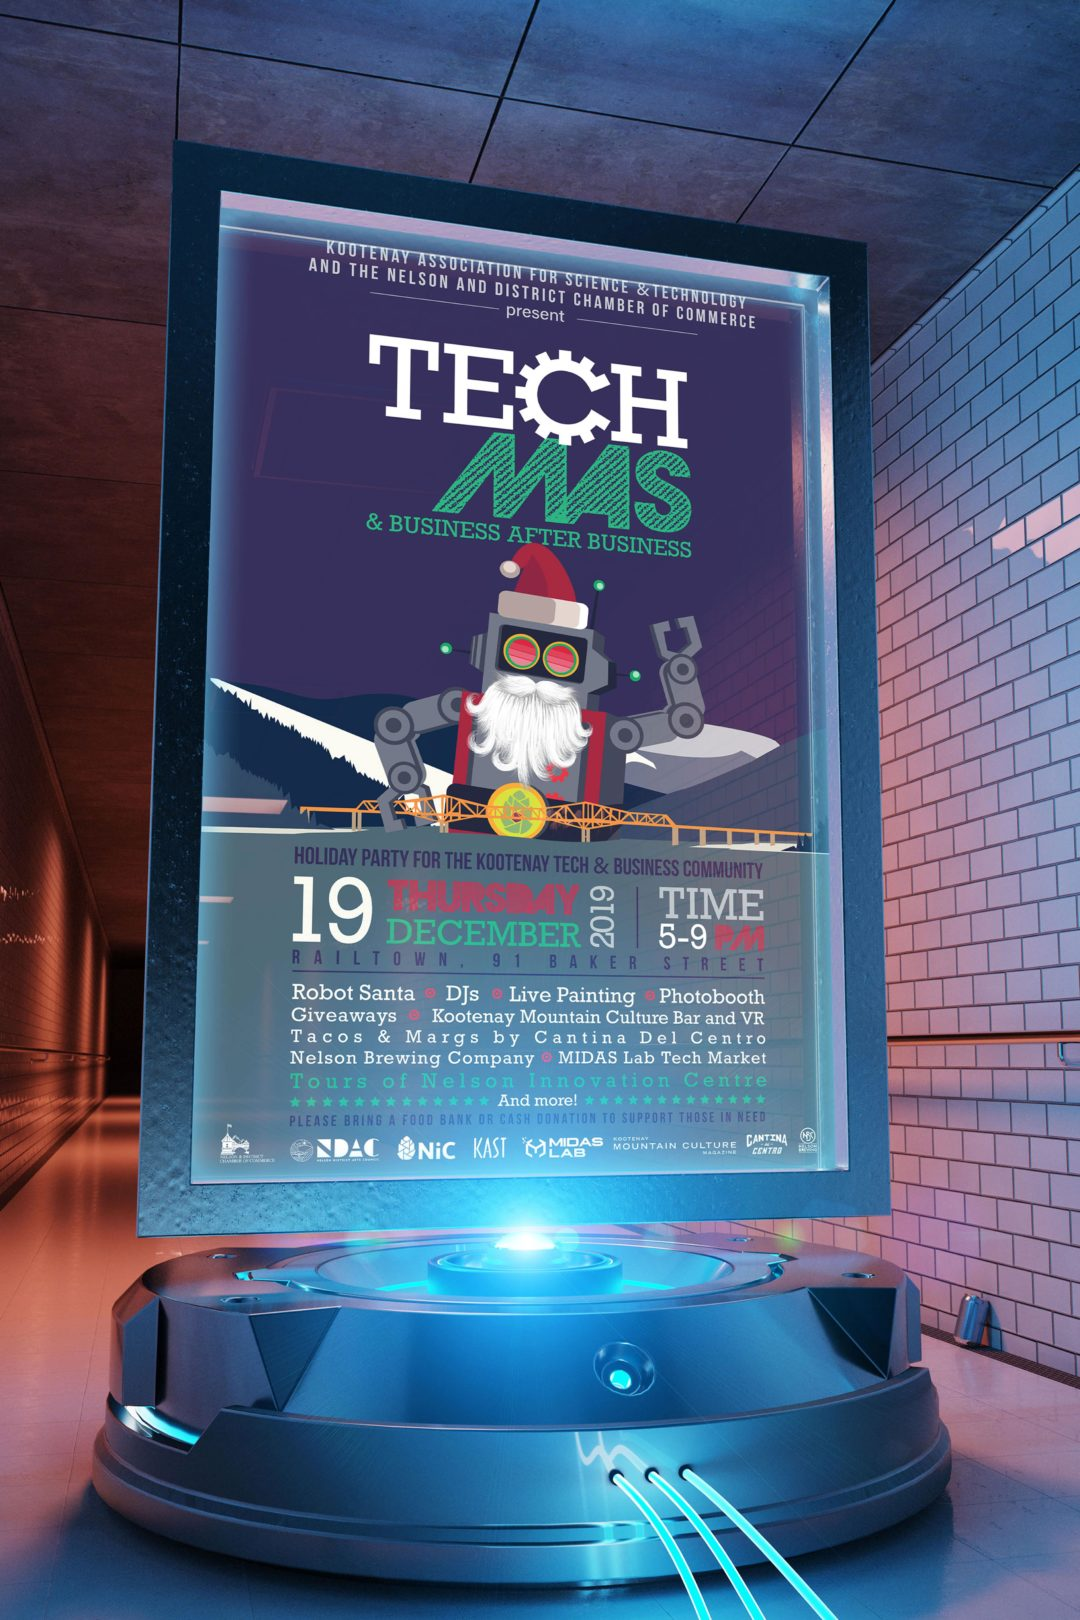 Techmas & Business After Business